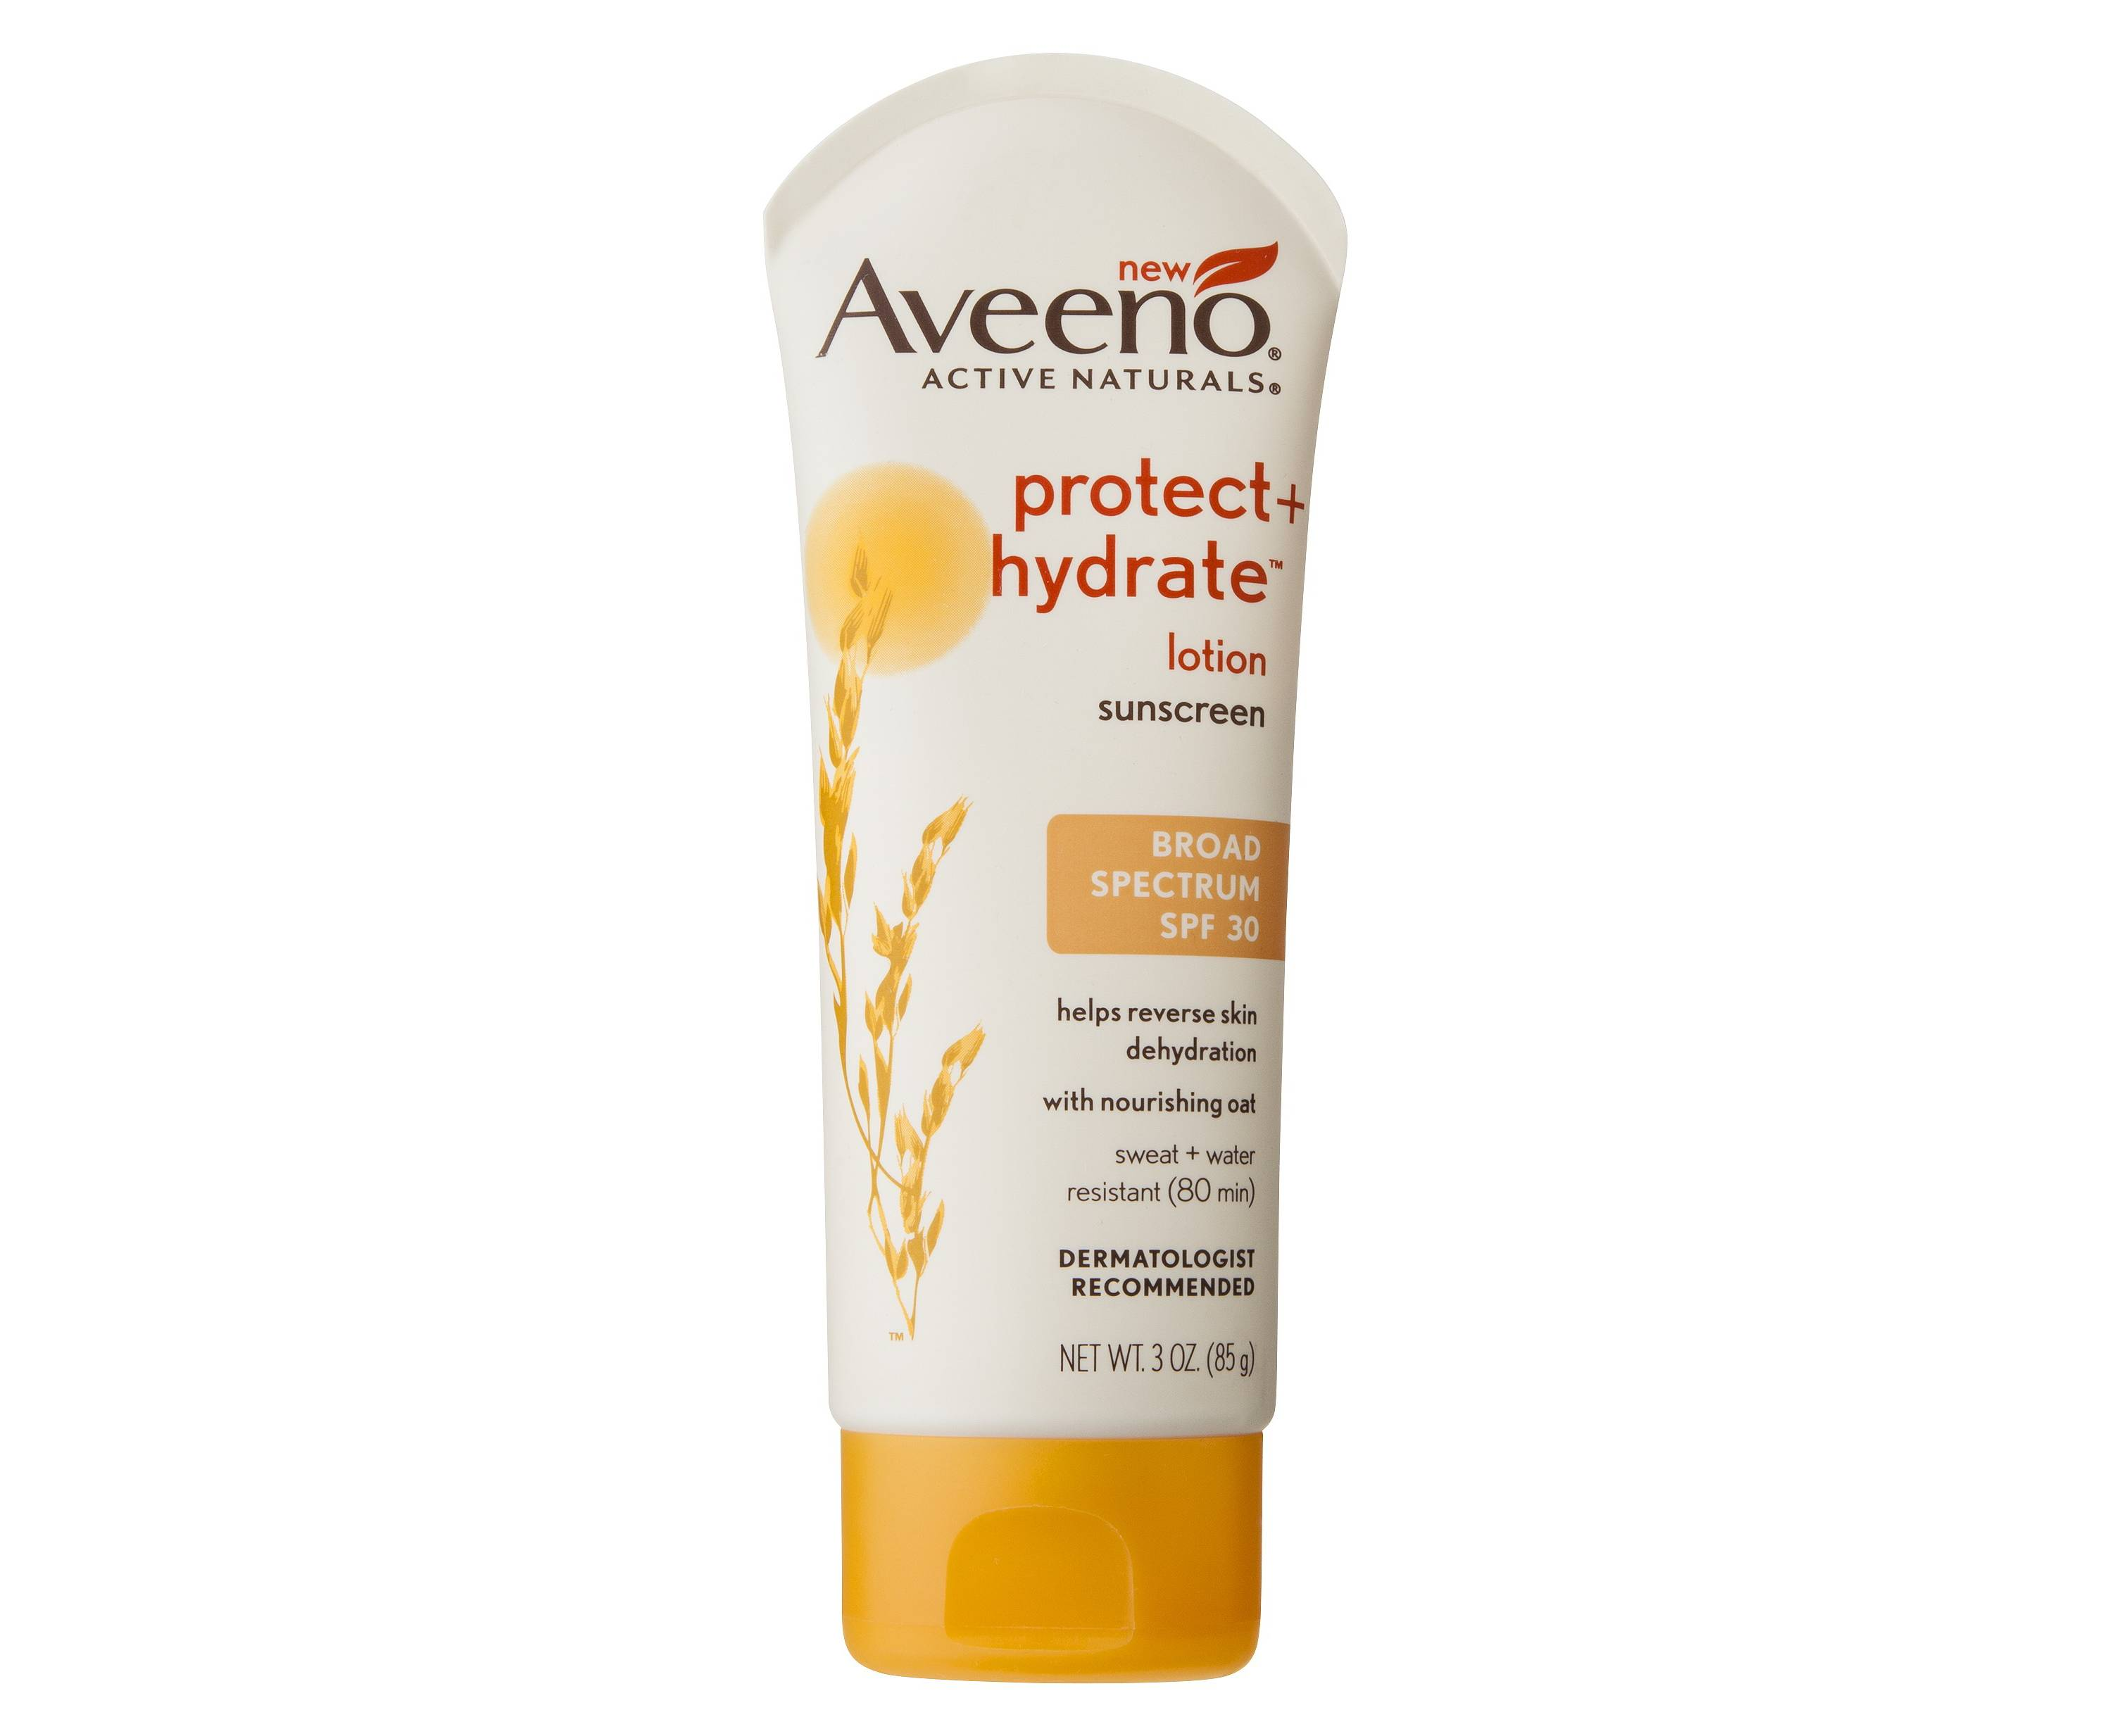 Aveeno Protect+Hydrate Lotion - SPF 30